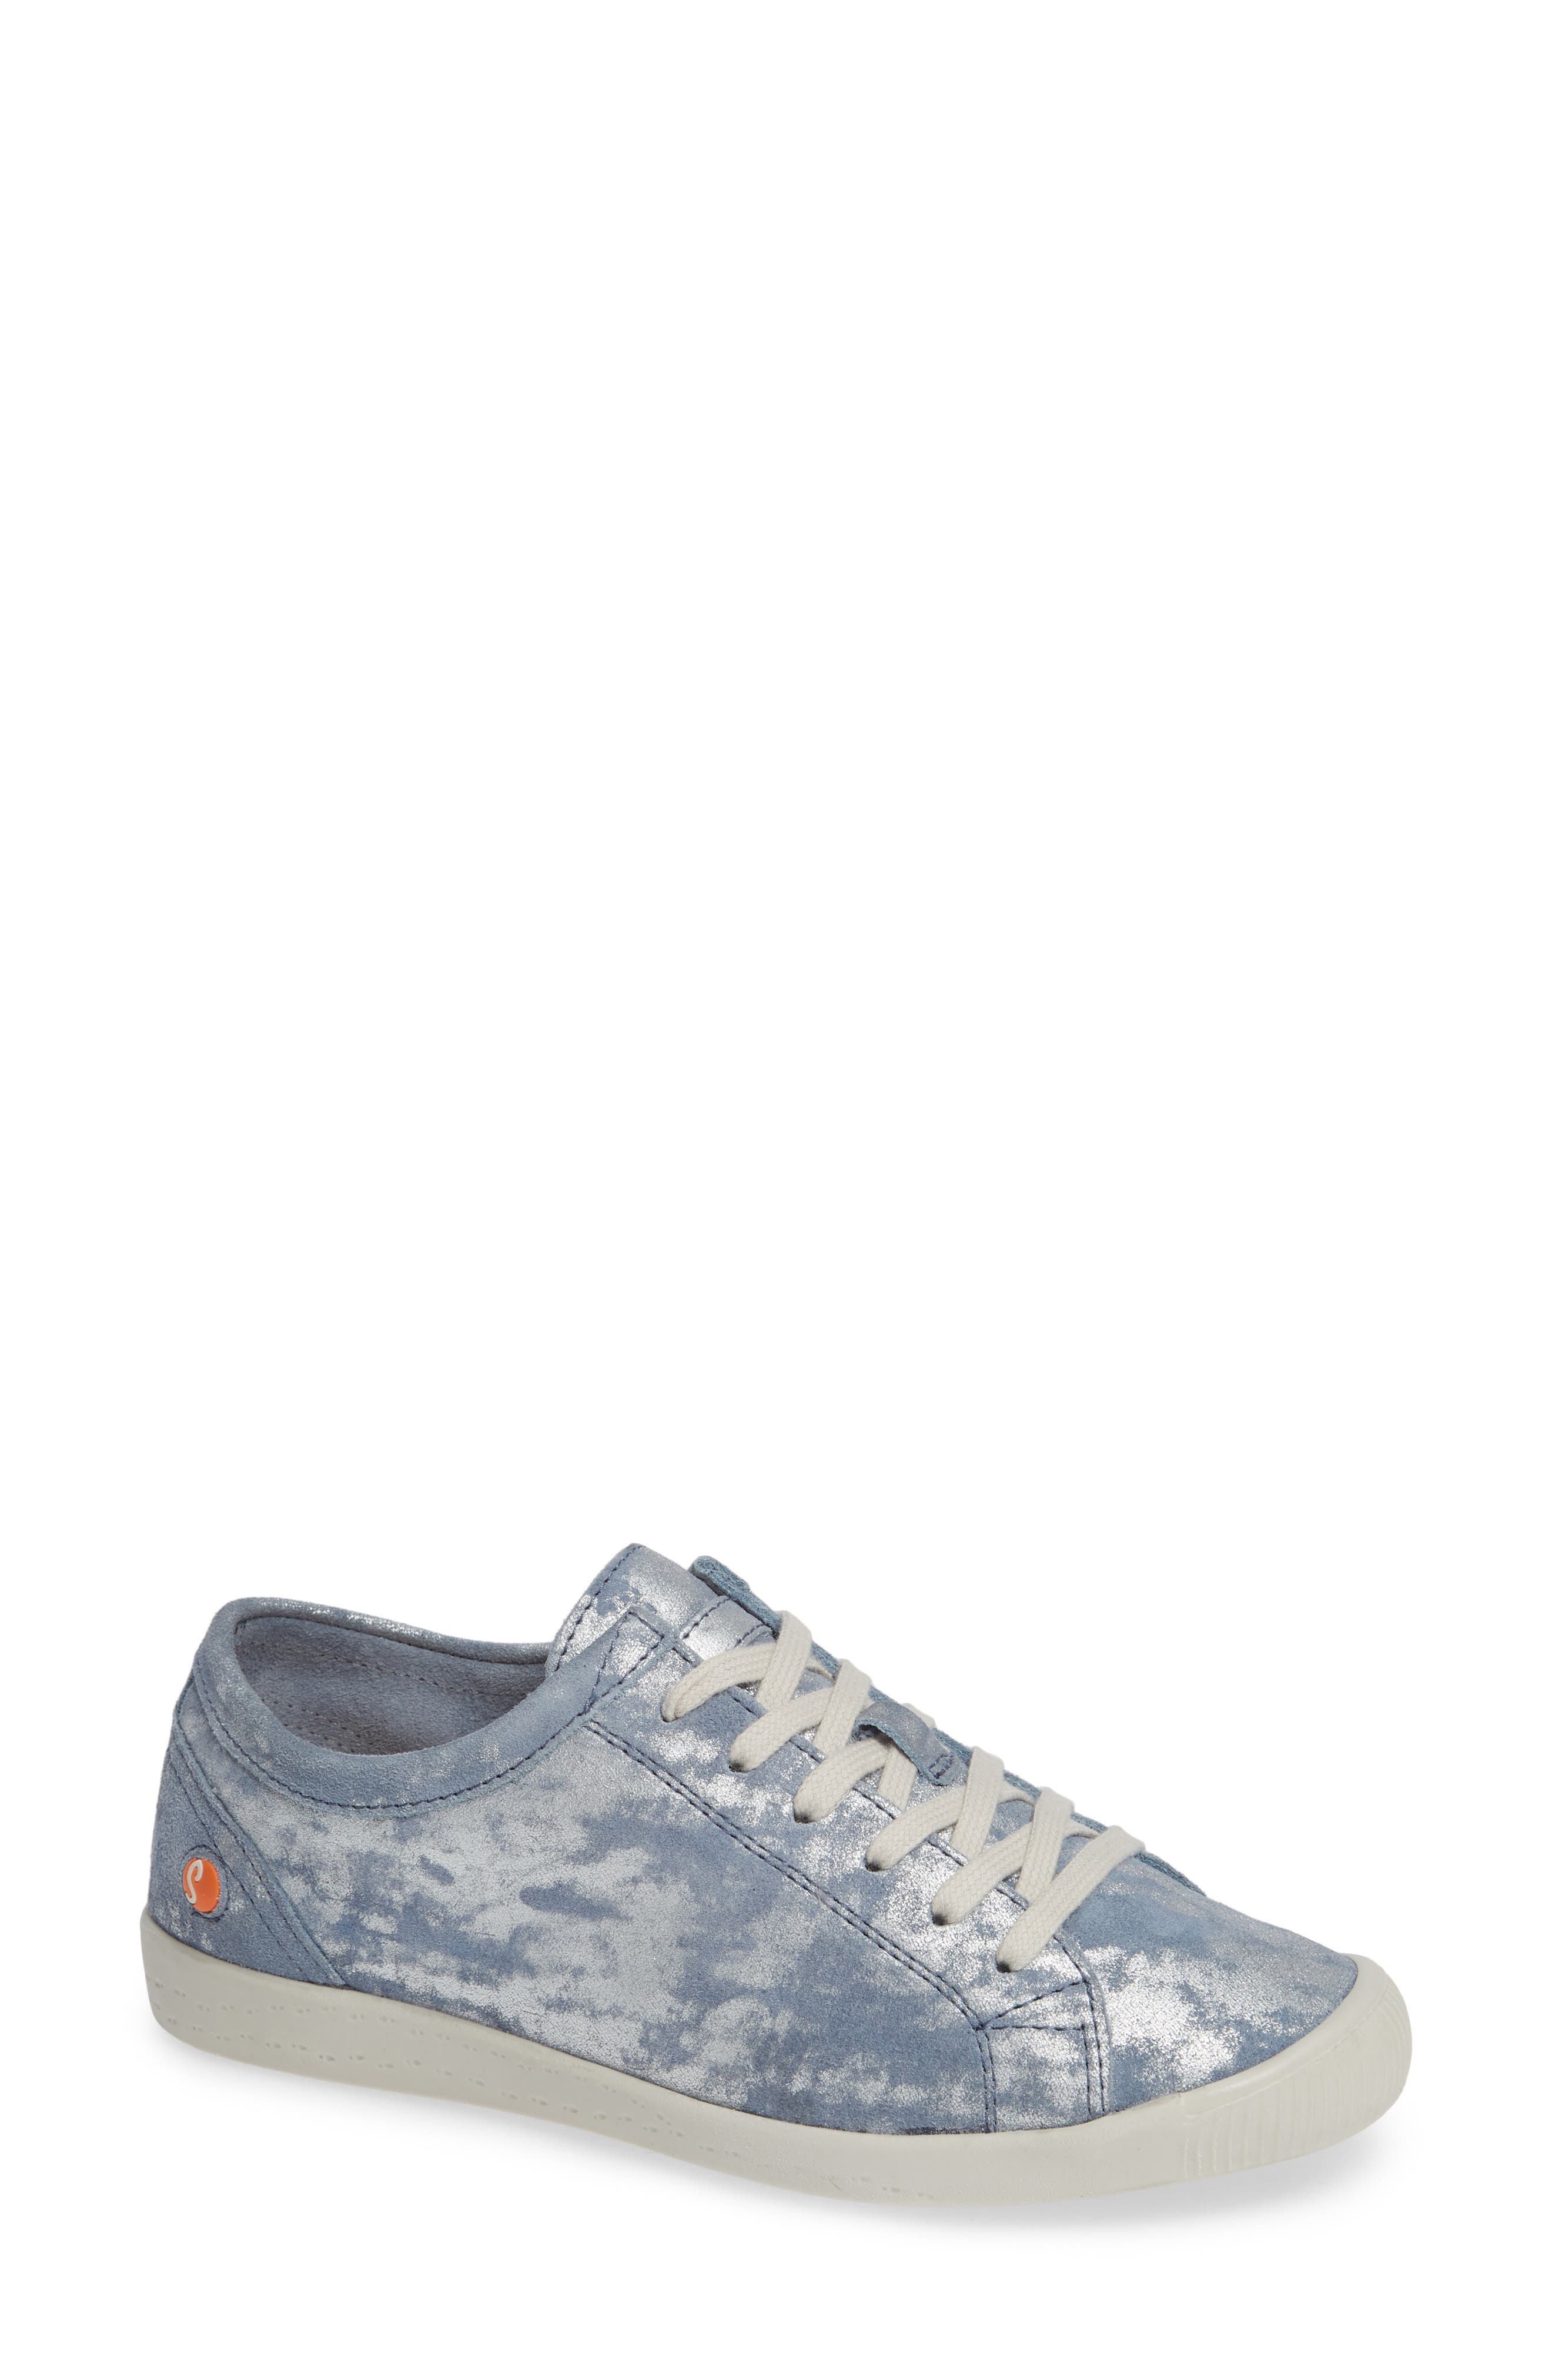 Softinos By Fly London Isla Distressed Sneaker - Blue